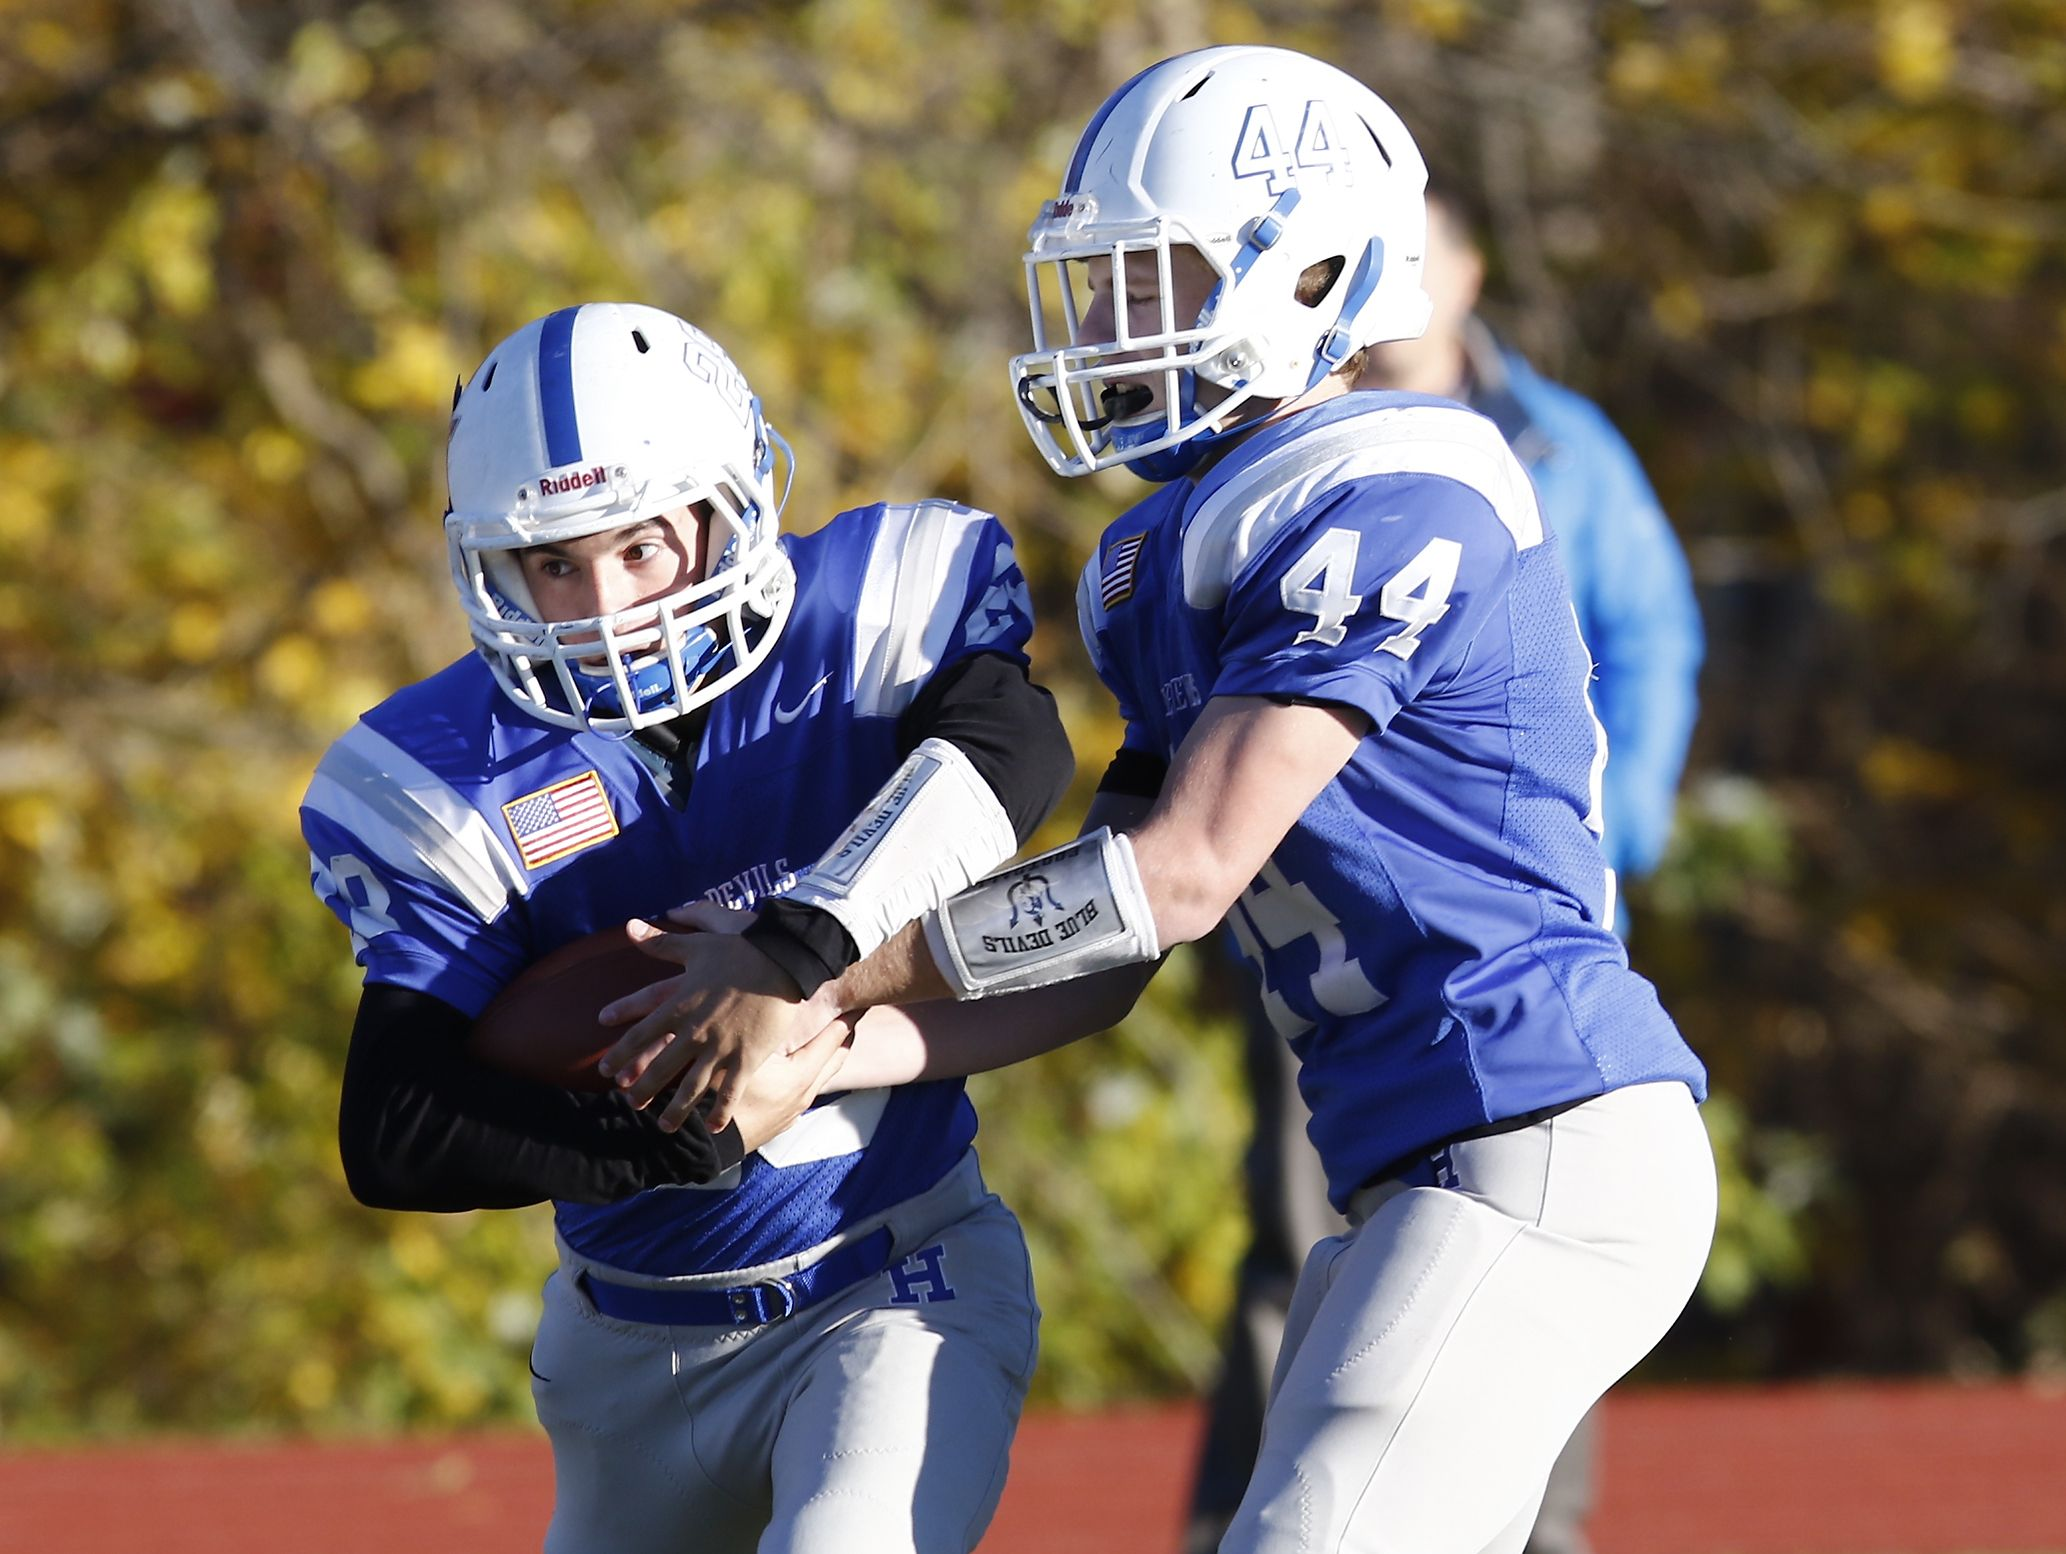 Haldane's Sam Giachinta (44) hands off to Joe Digregorio (28) during their 26-6 win over Tuckahoe in the Section 1 Class D championship football game at Mahopac High School on Friday, November 4, 2016.